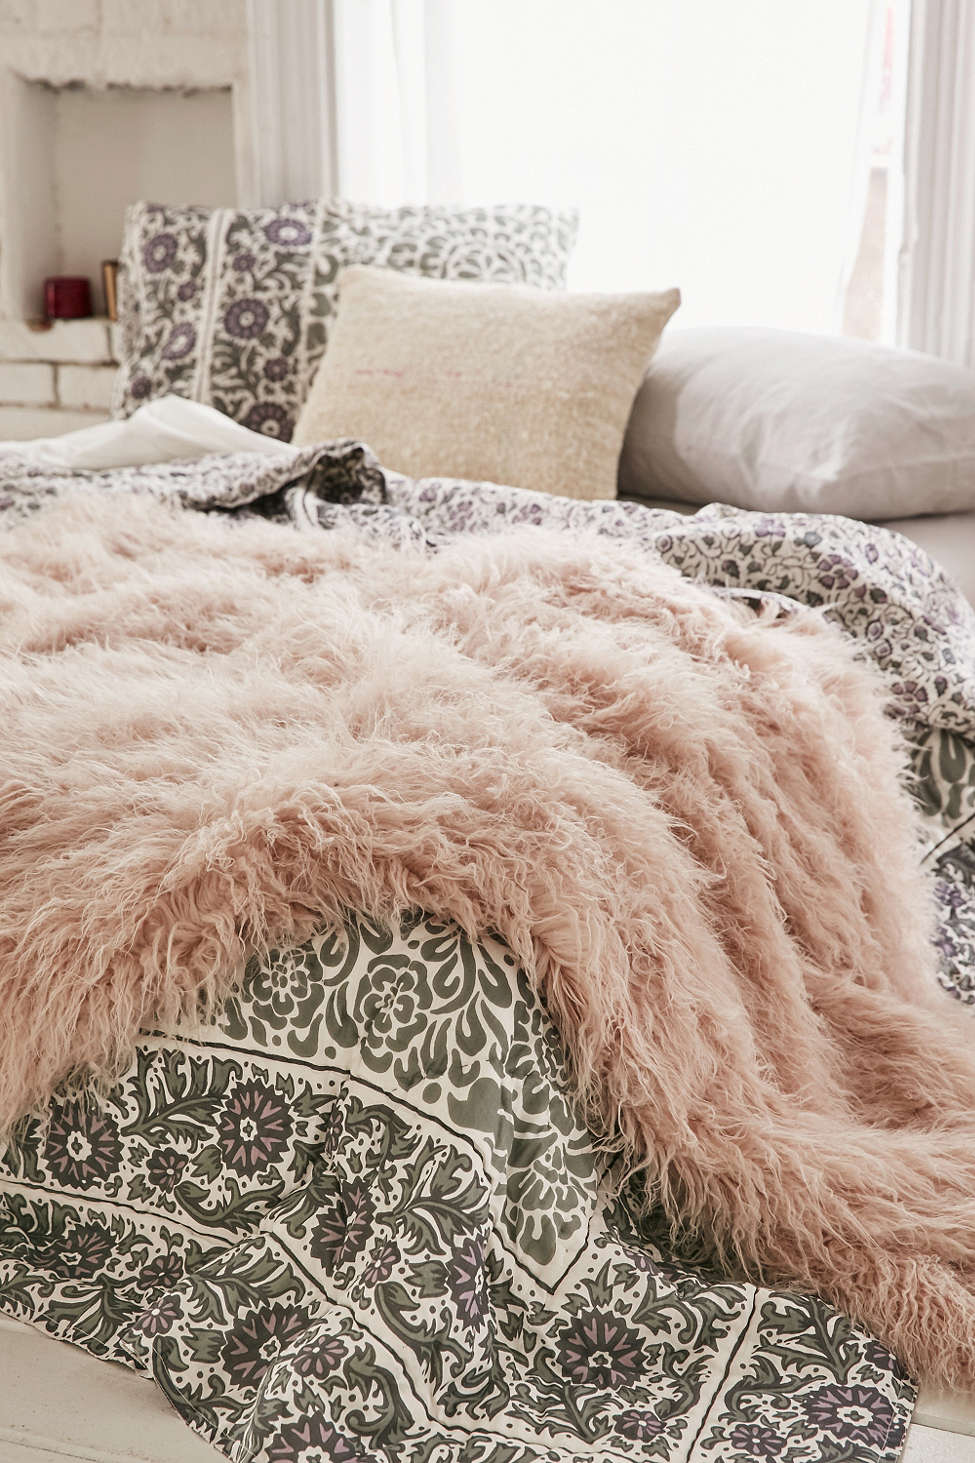 sheepskin rug ideas sheepskin rug throw blanket VQSDBDQ